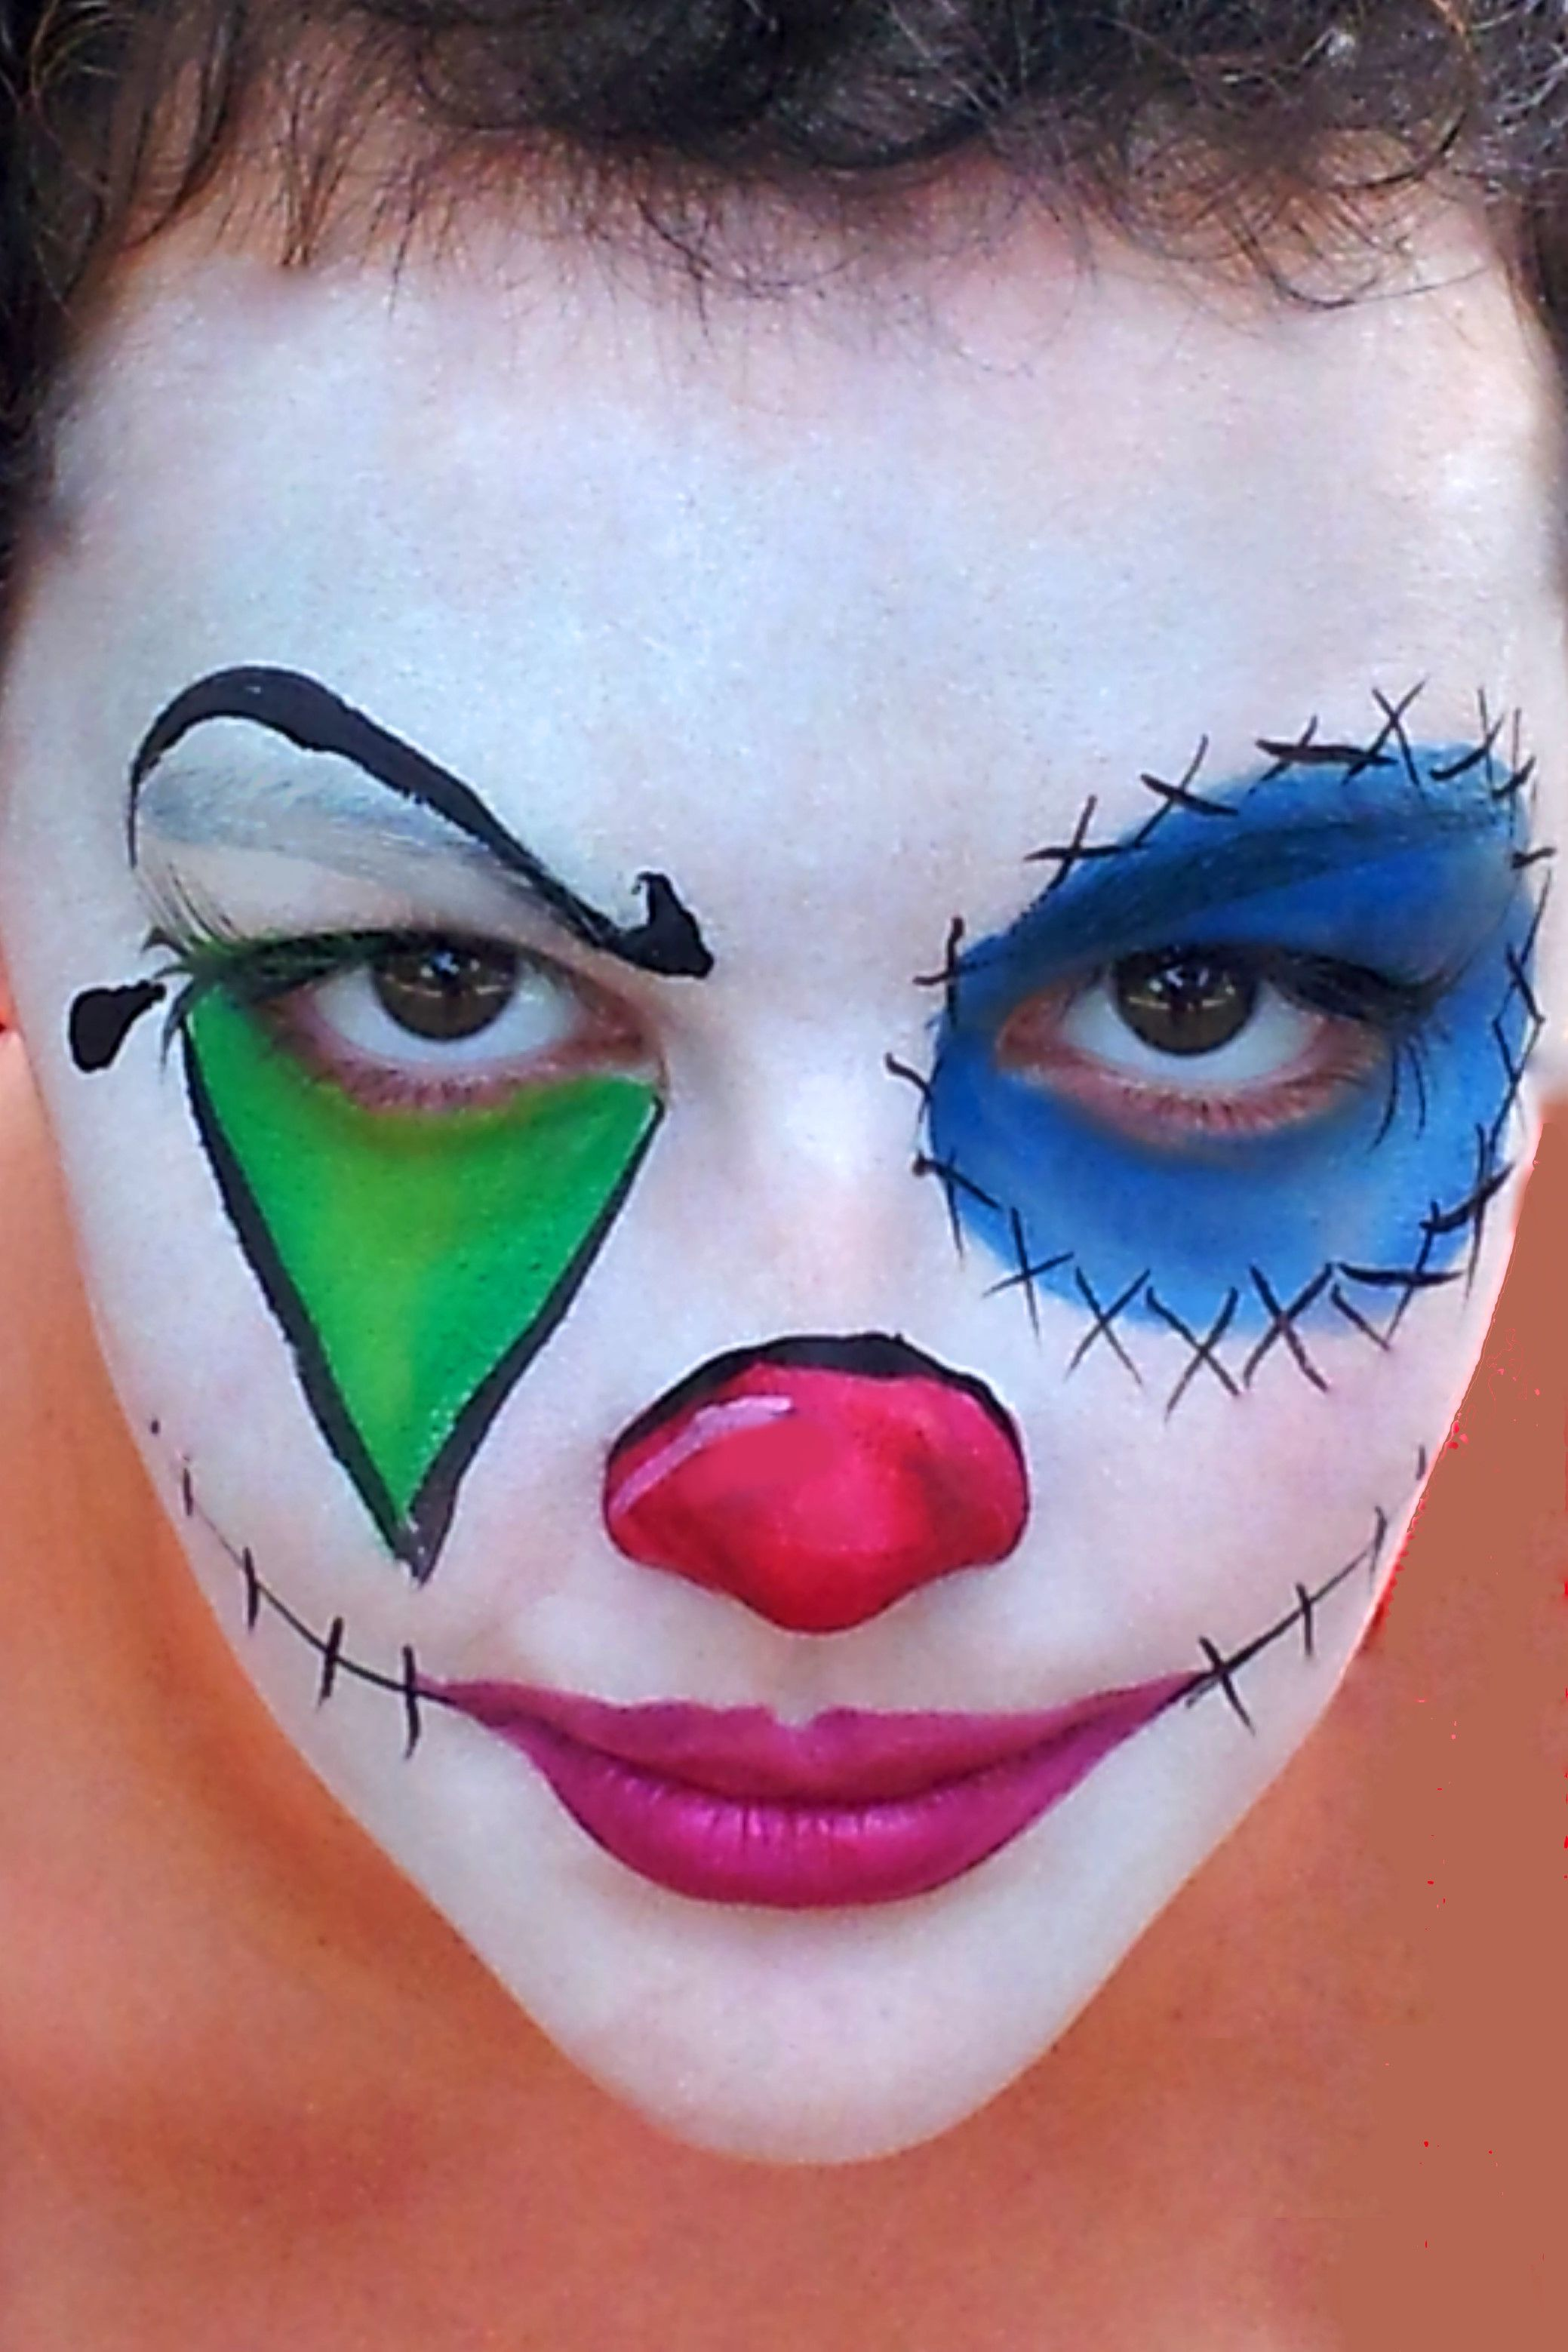 scary creepy clown face paint for halloween party or event white background is starblend white powder colors in design are tag